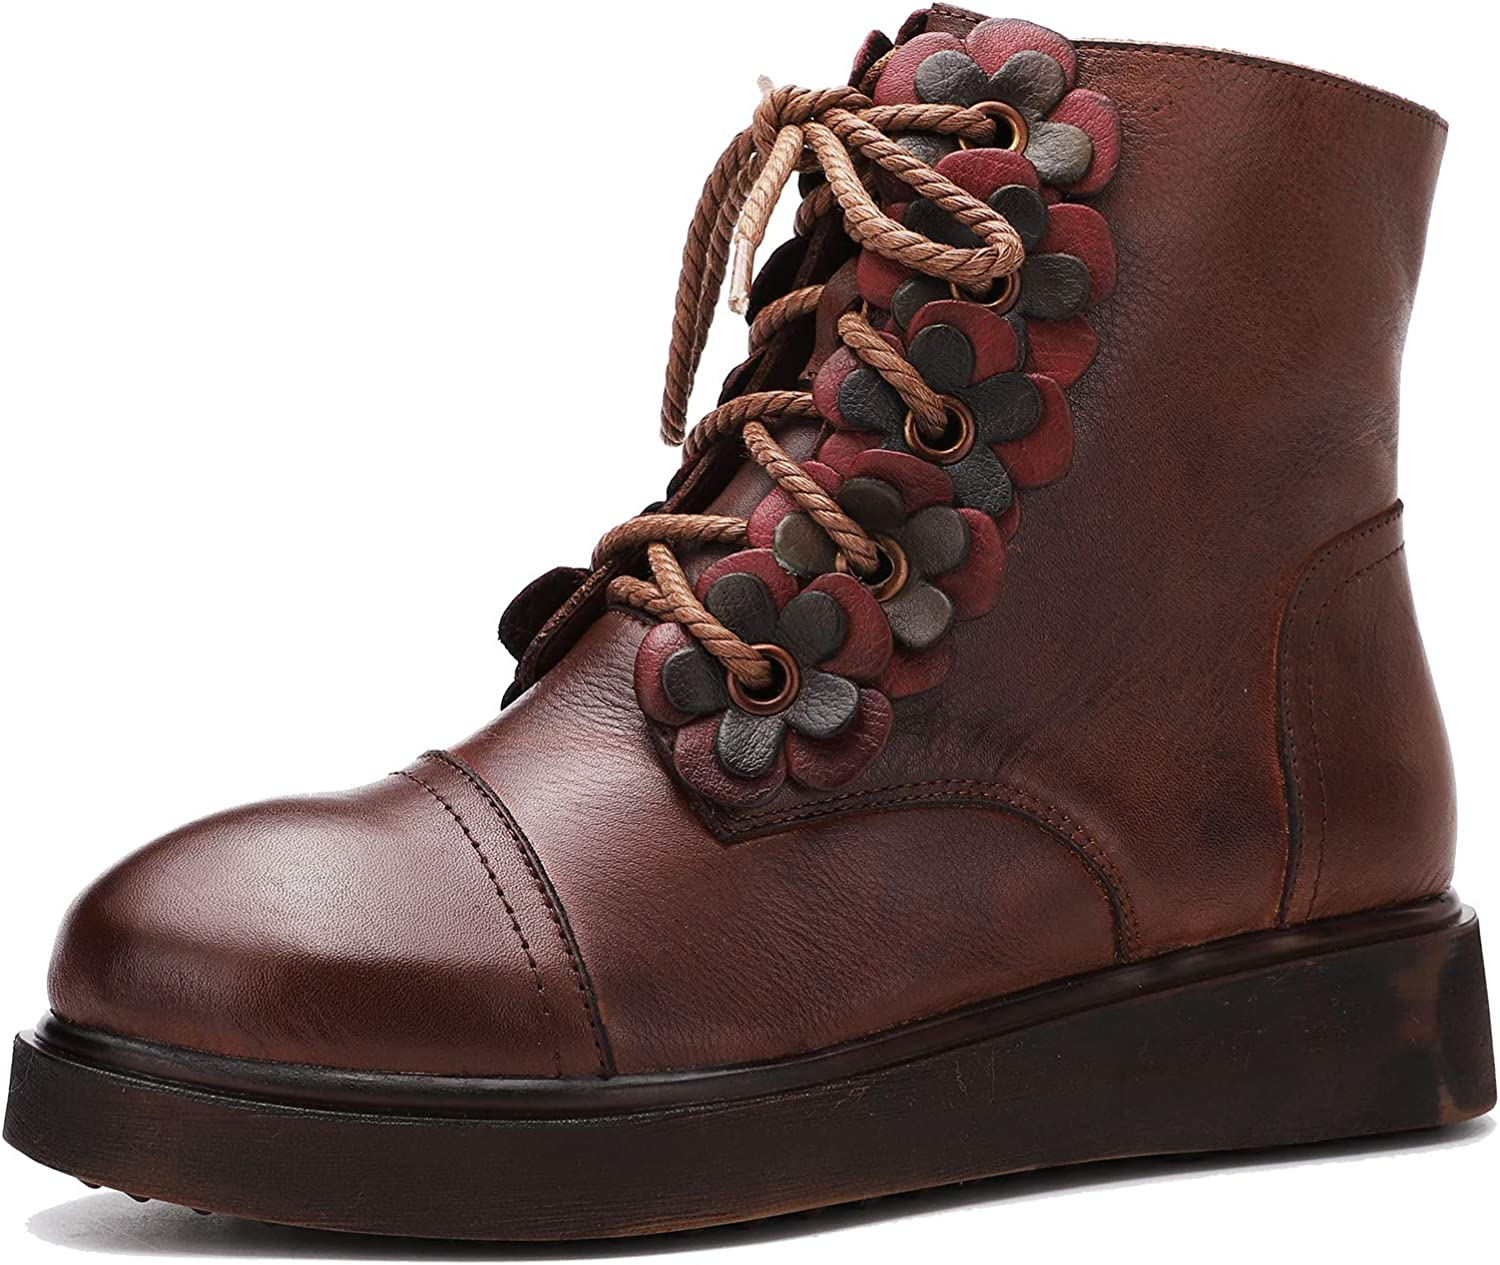 Go to Past Women's Genuine Leather Flat lace-up Ankle Boots Flower Decoration Vintage Round Casual shoes Side Zipper Non-Slip Platform Boots